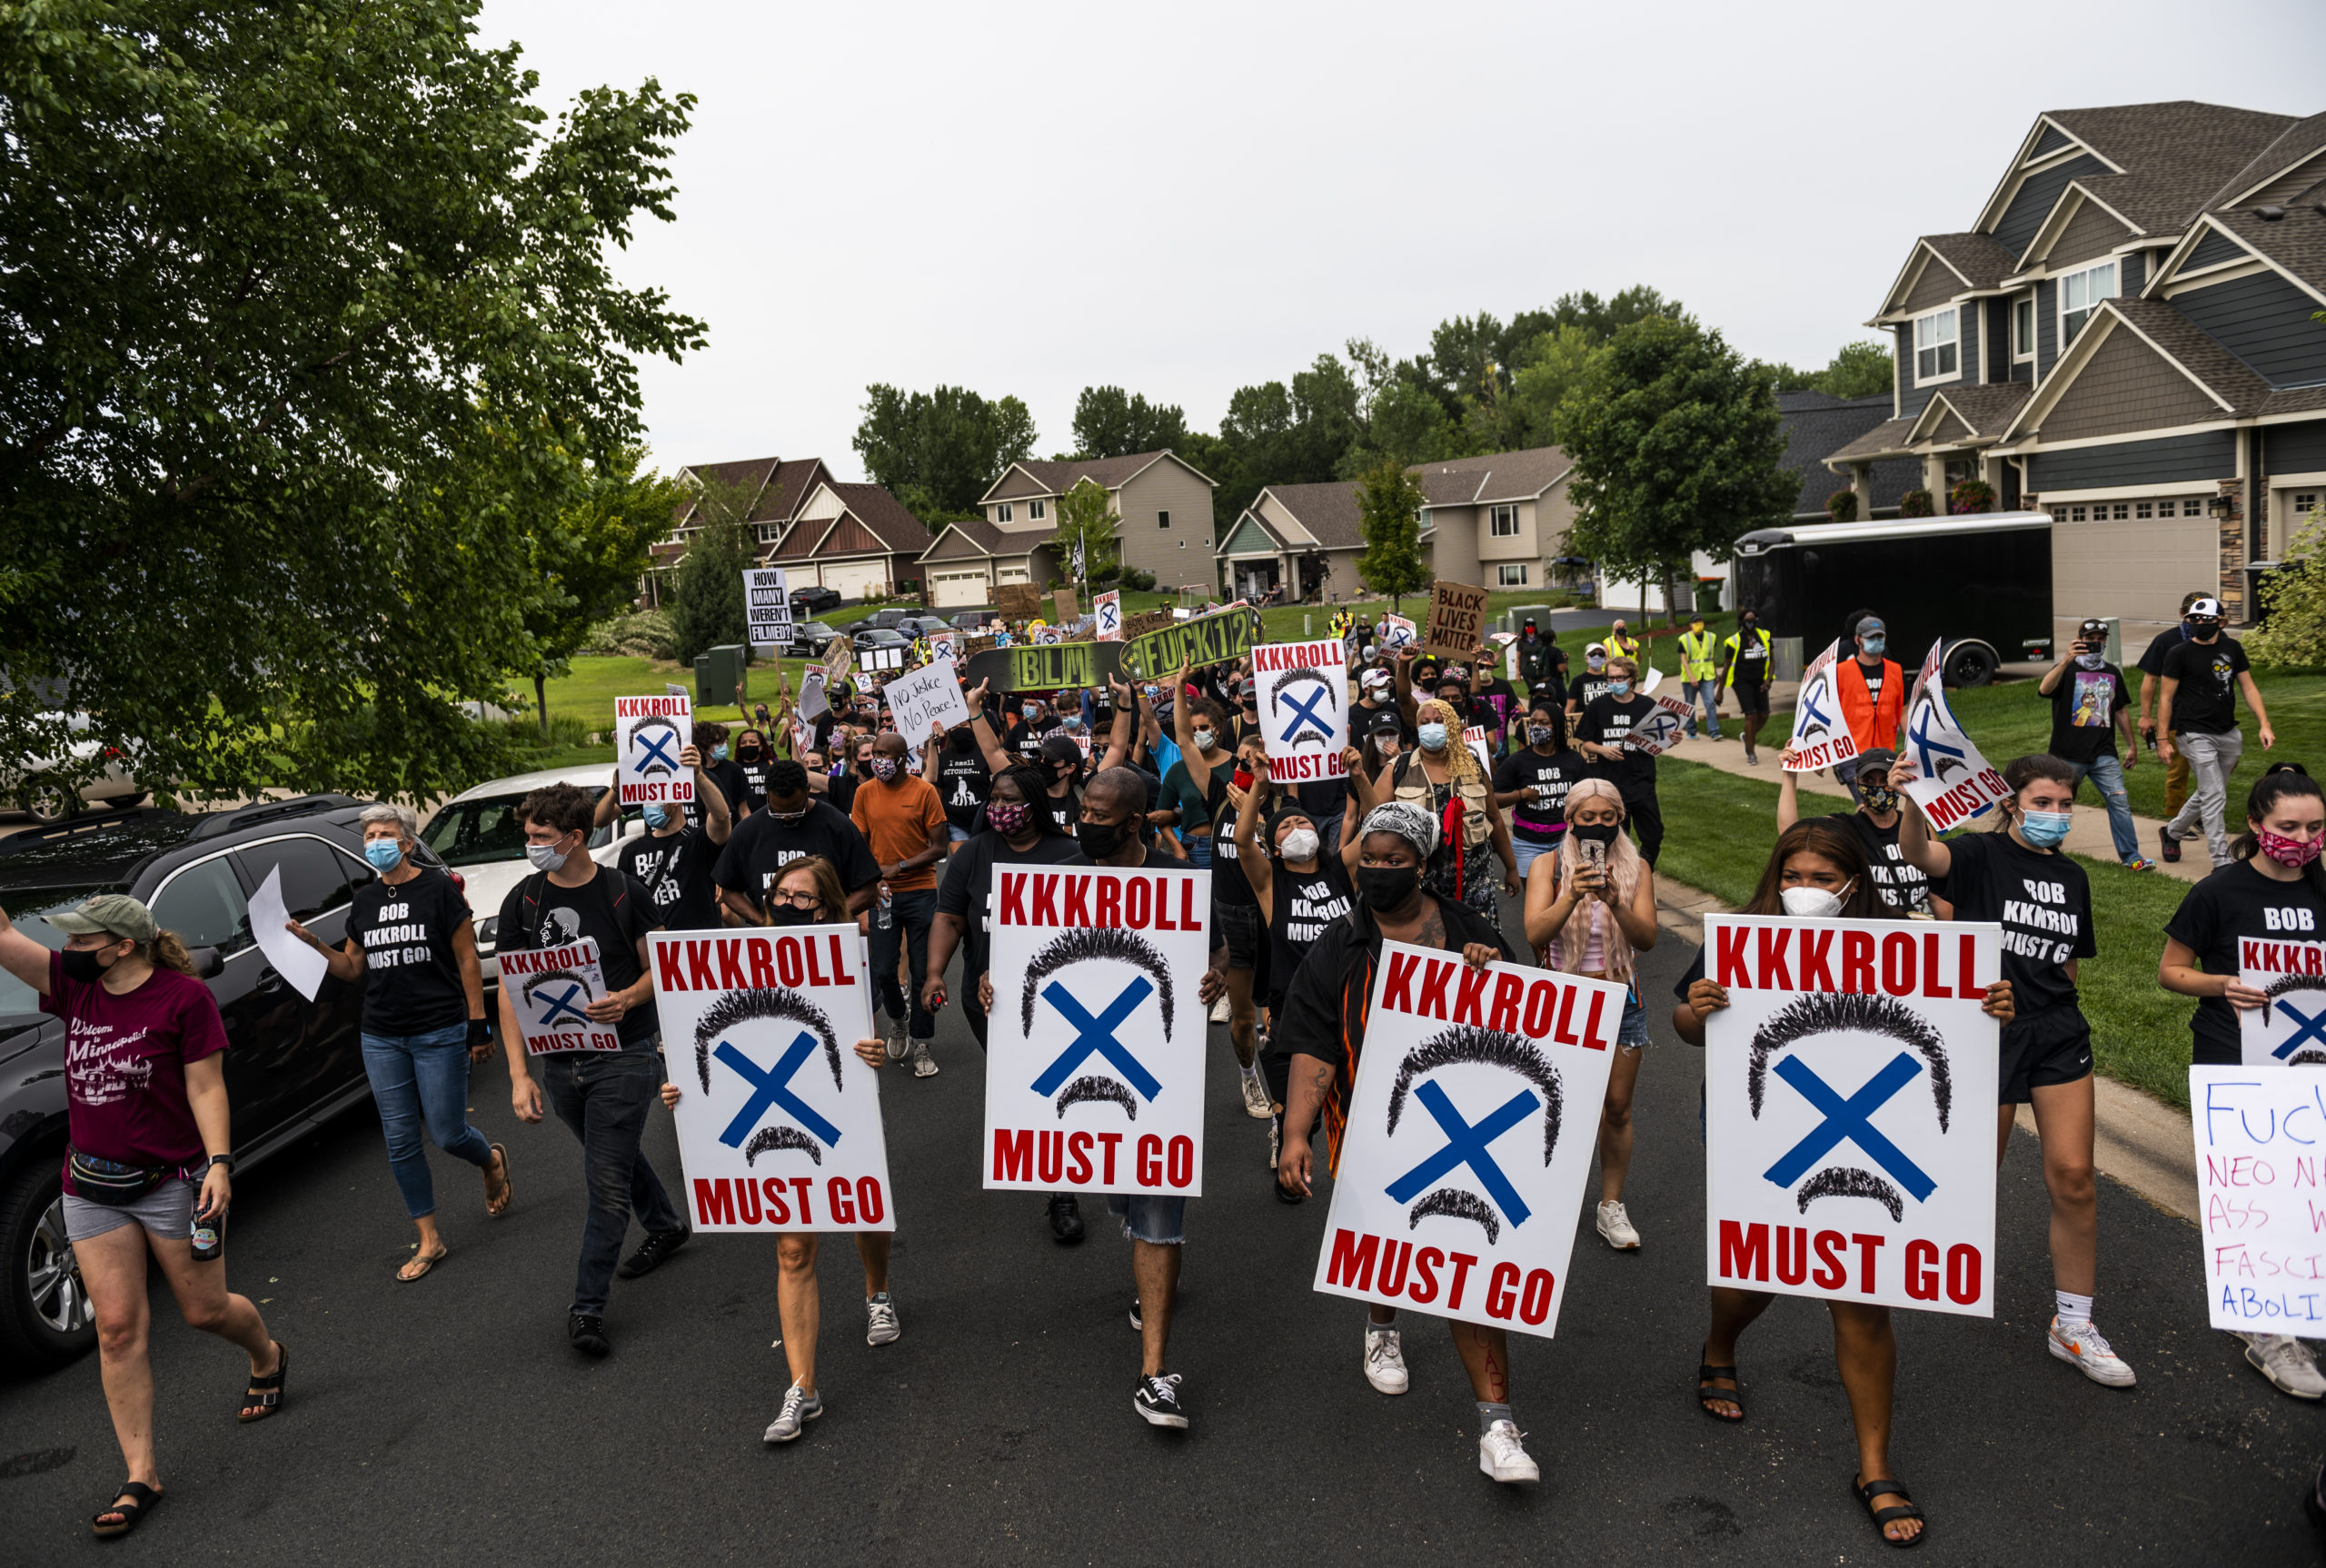 Demonstrators march during a protest near Minneapolis Police Union President Lt. Bob Kroll's house on Aug. 15 in Minnesota. (Stephen Maturen/Getty Images)